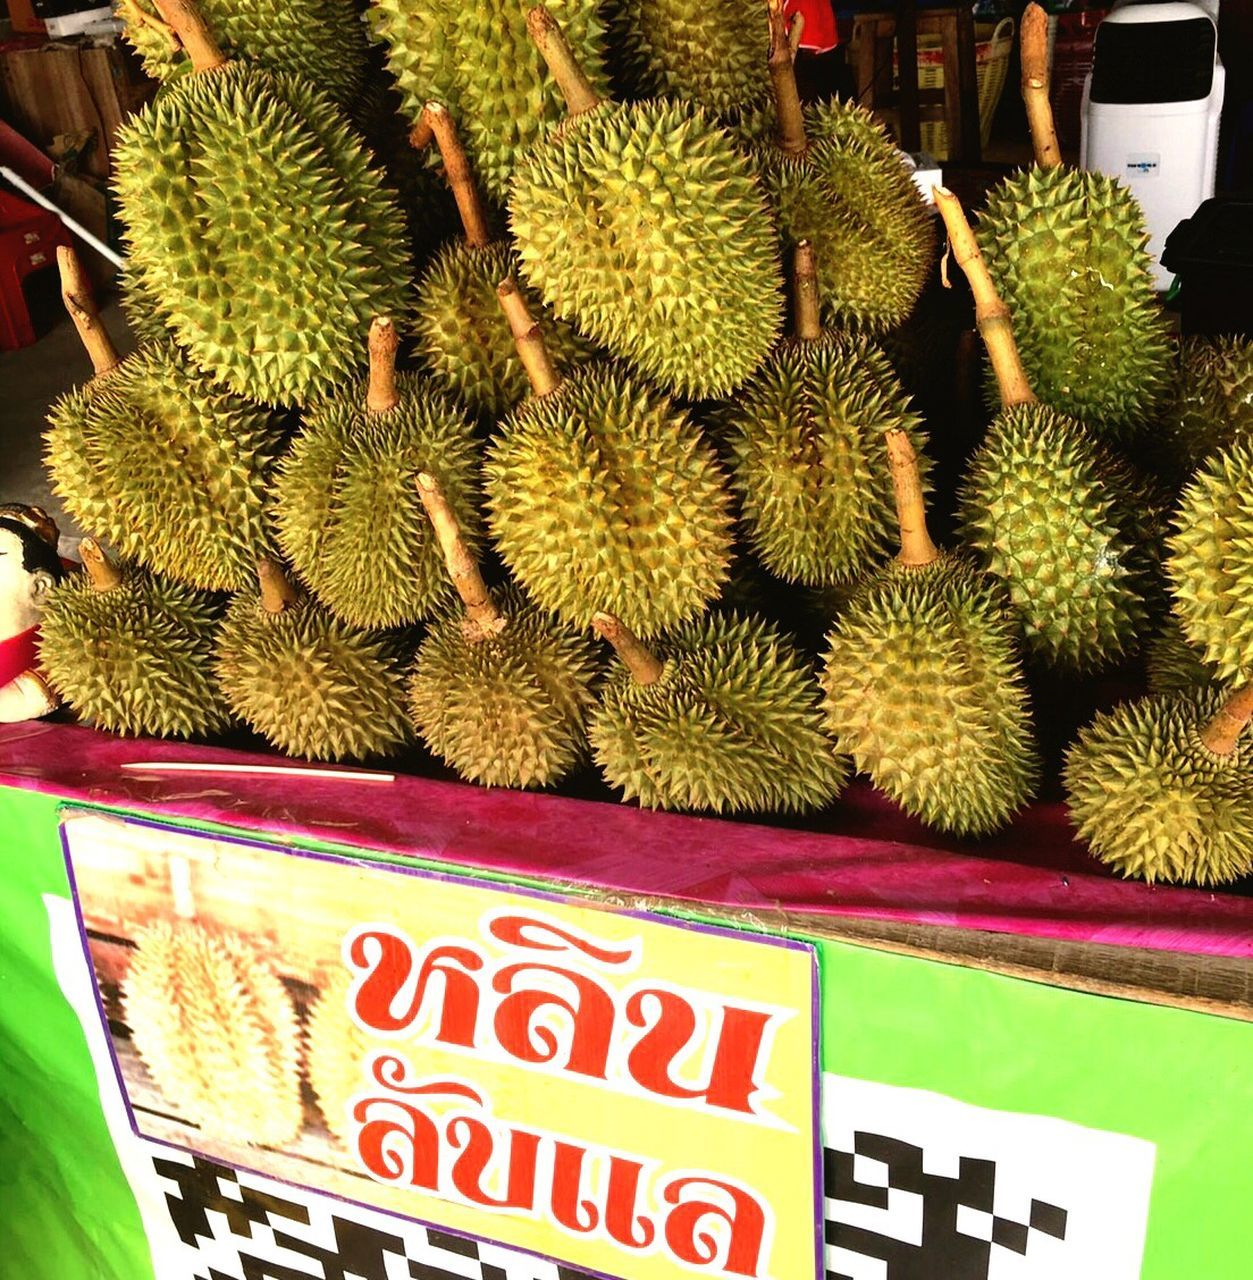 market, for sale, cactus, outdoors, food and drink, fruit, green color, retail, price tag, no people, food, freshness, day, growth, healthy eating, hedgehog, nature, close-up